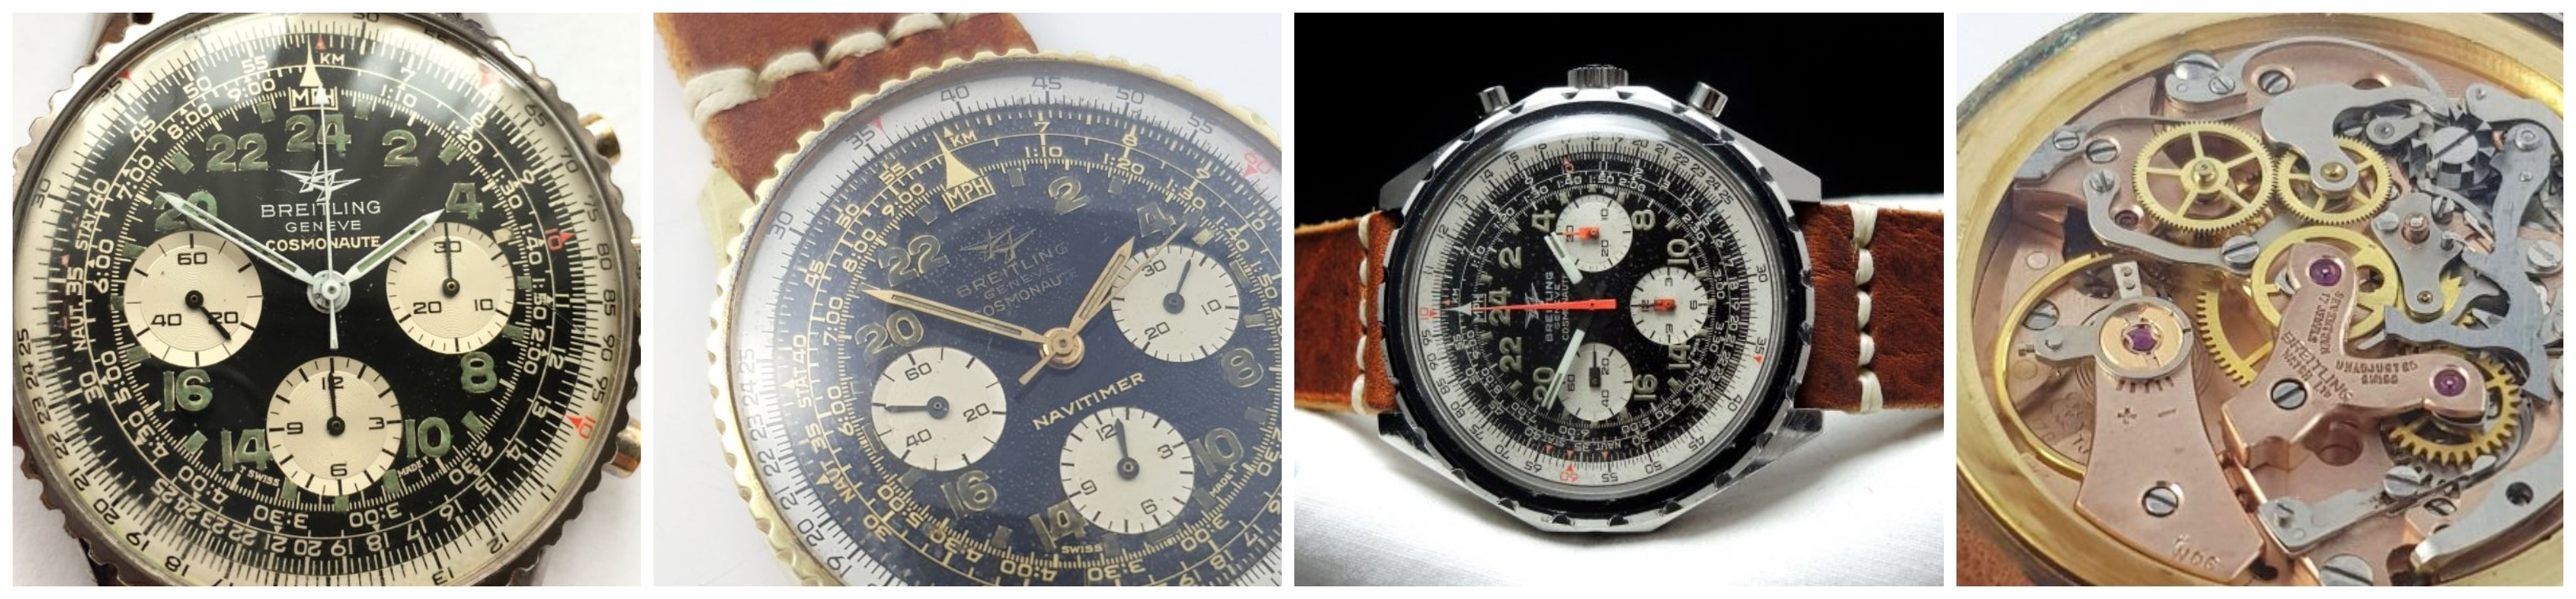 Breitling Navitimer: The First Smart Watch